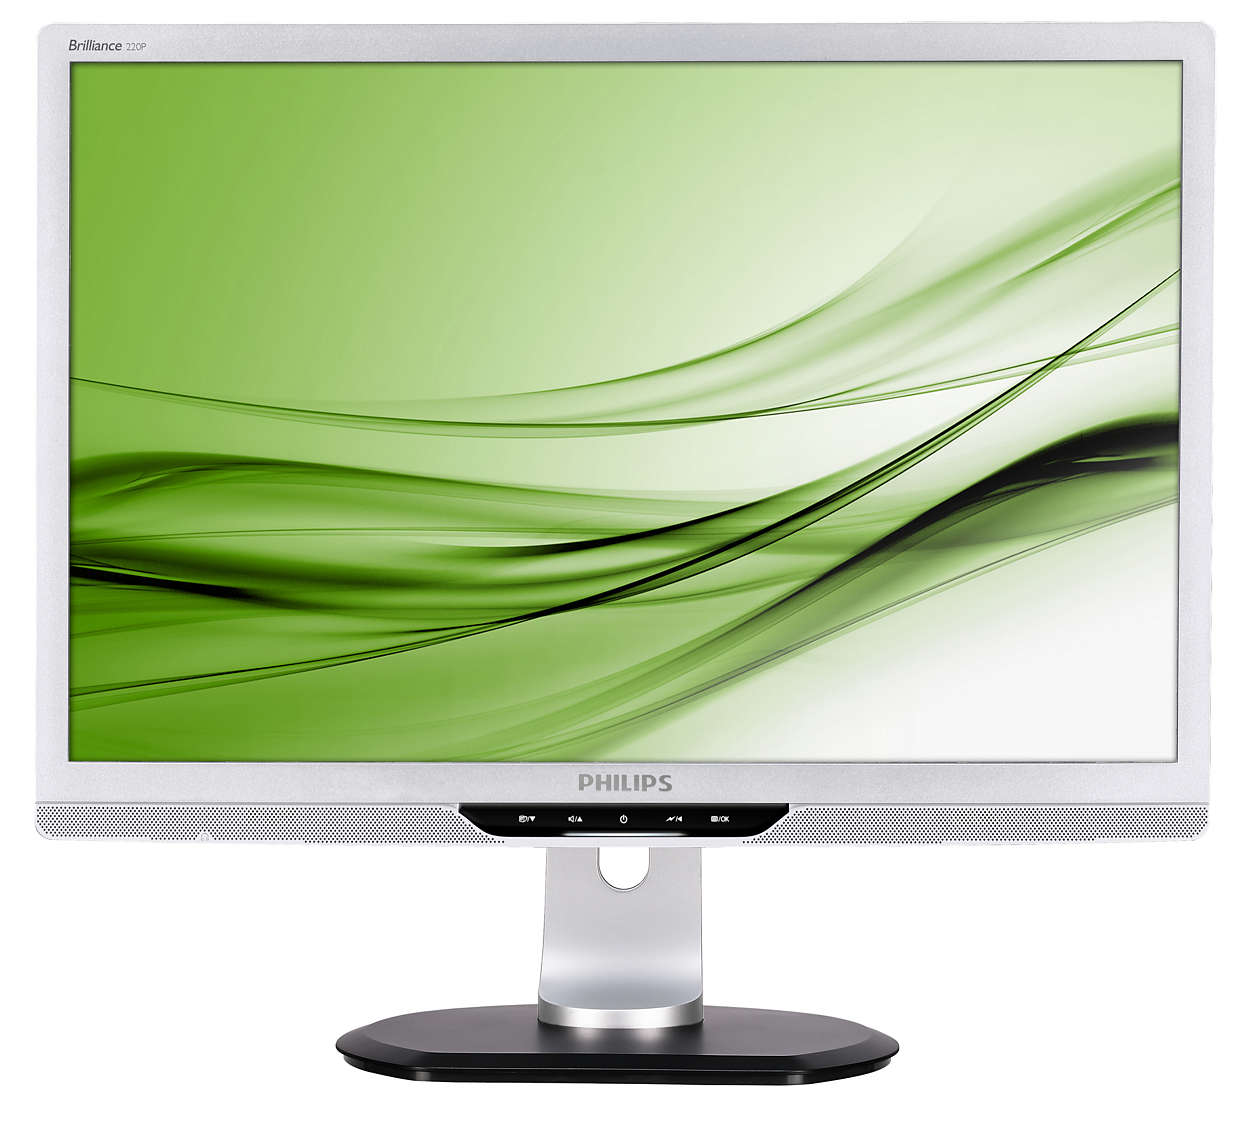 "Monitor 22"" Philips 220P2 (1680 x 1050)"